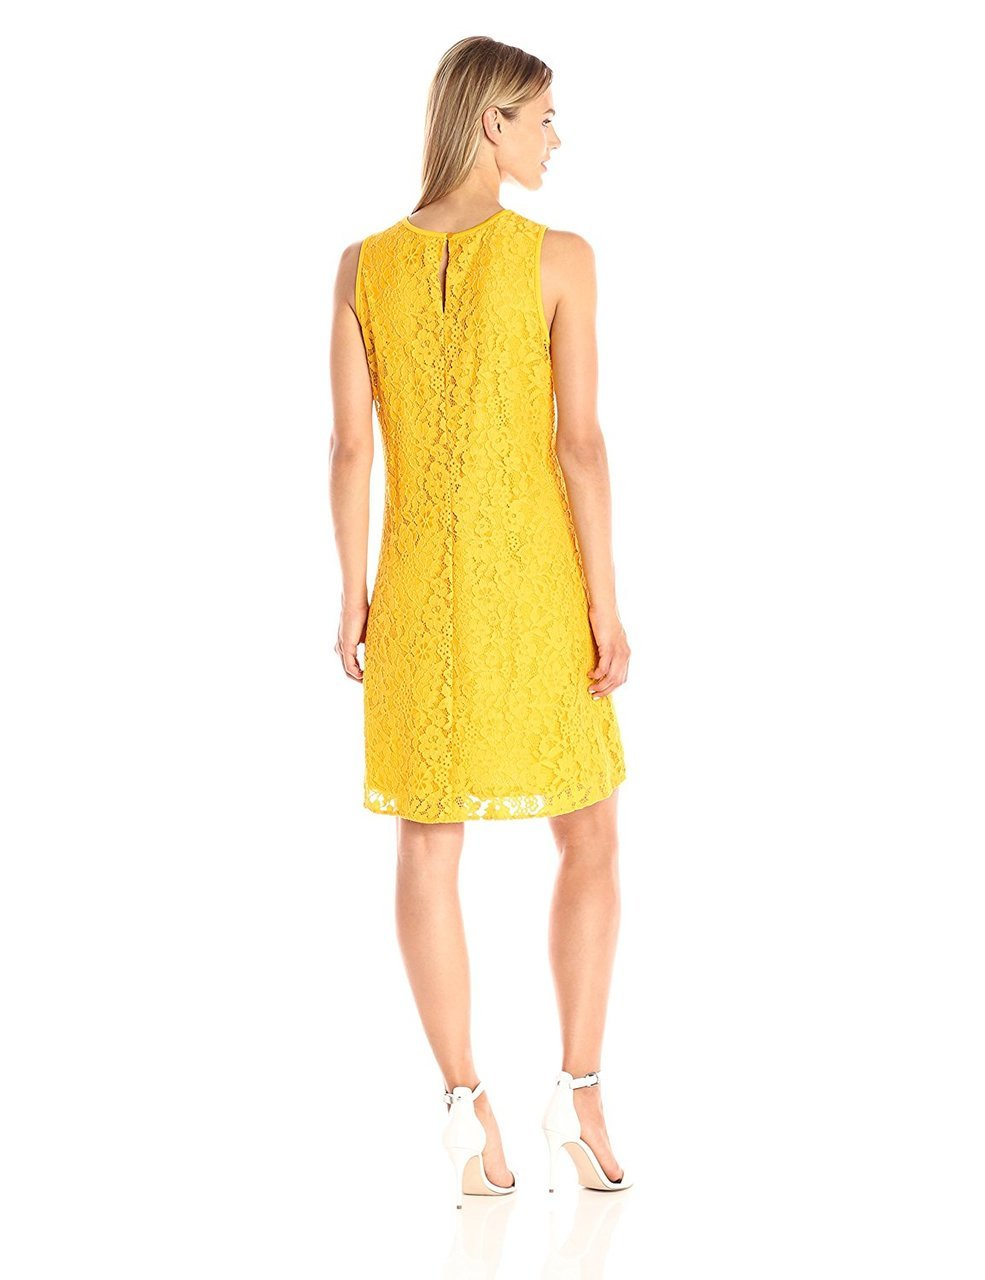 Nine West - 10647202 Sleeveless Floral Lace Cocktail Dress in Yellow